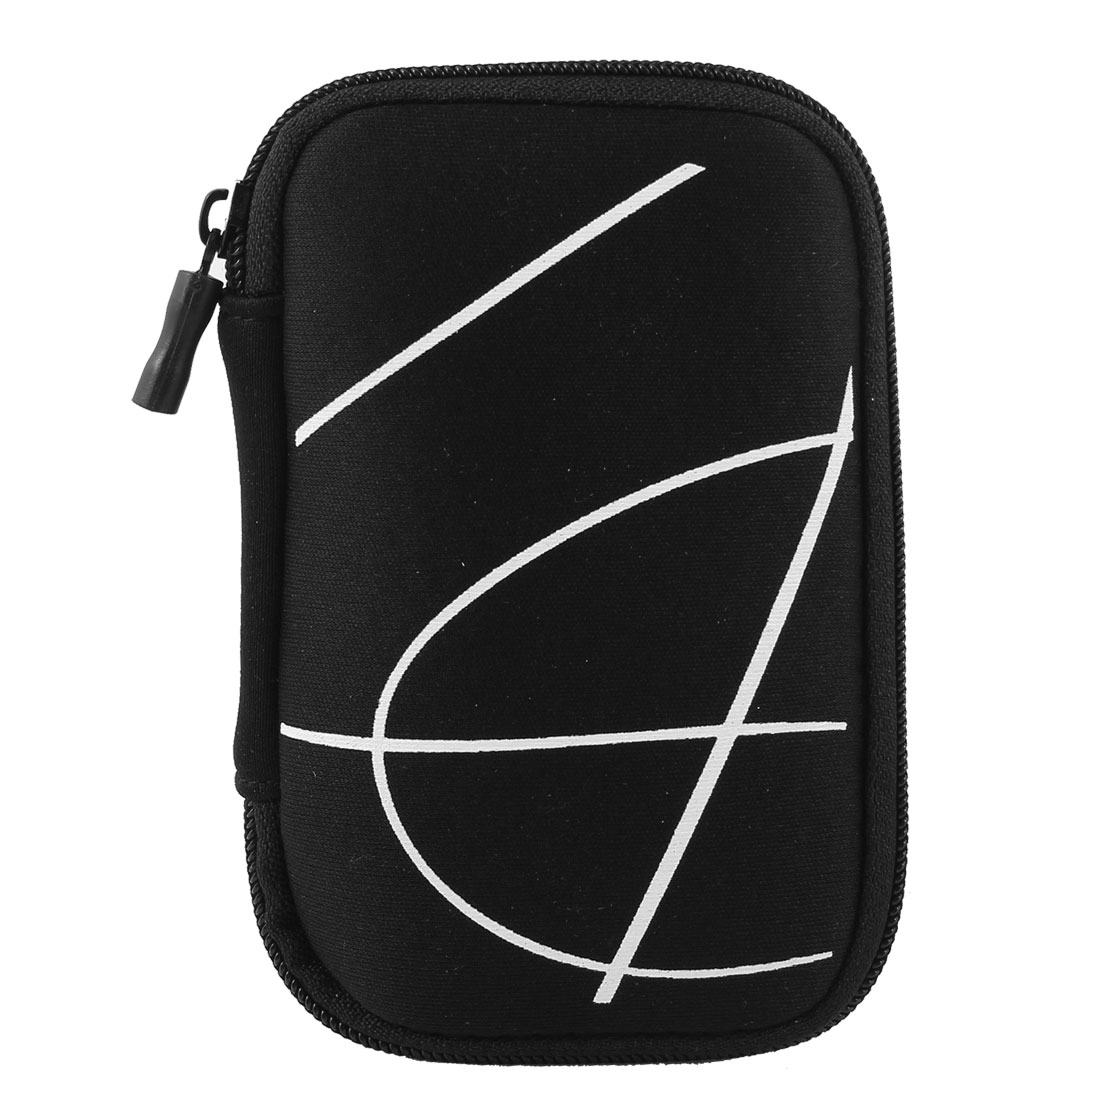 "Black Protective Case Bag Pouch Zipper Closure for 2.5"" Hard Disk Drive"